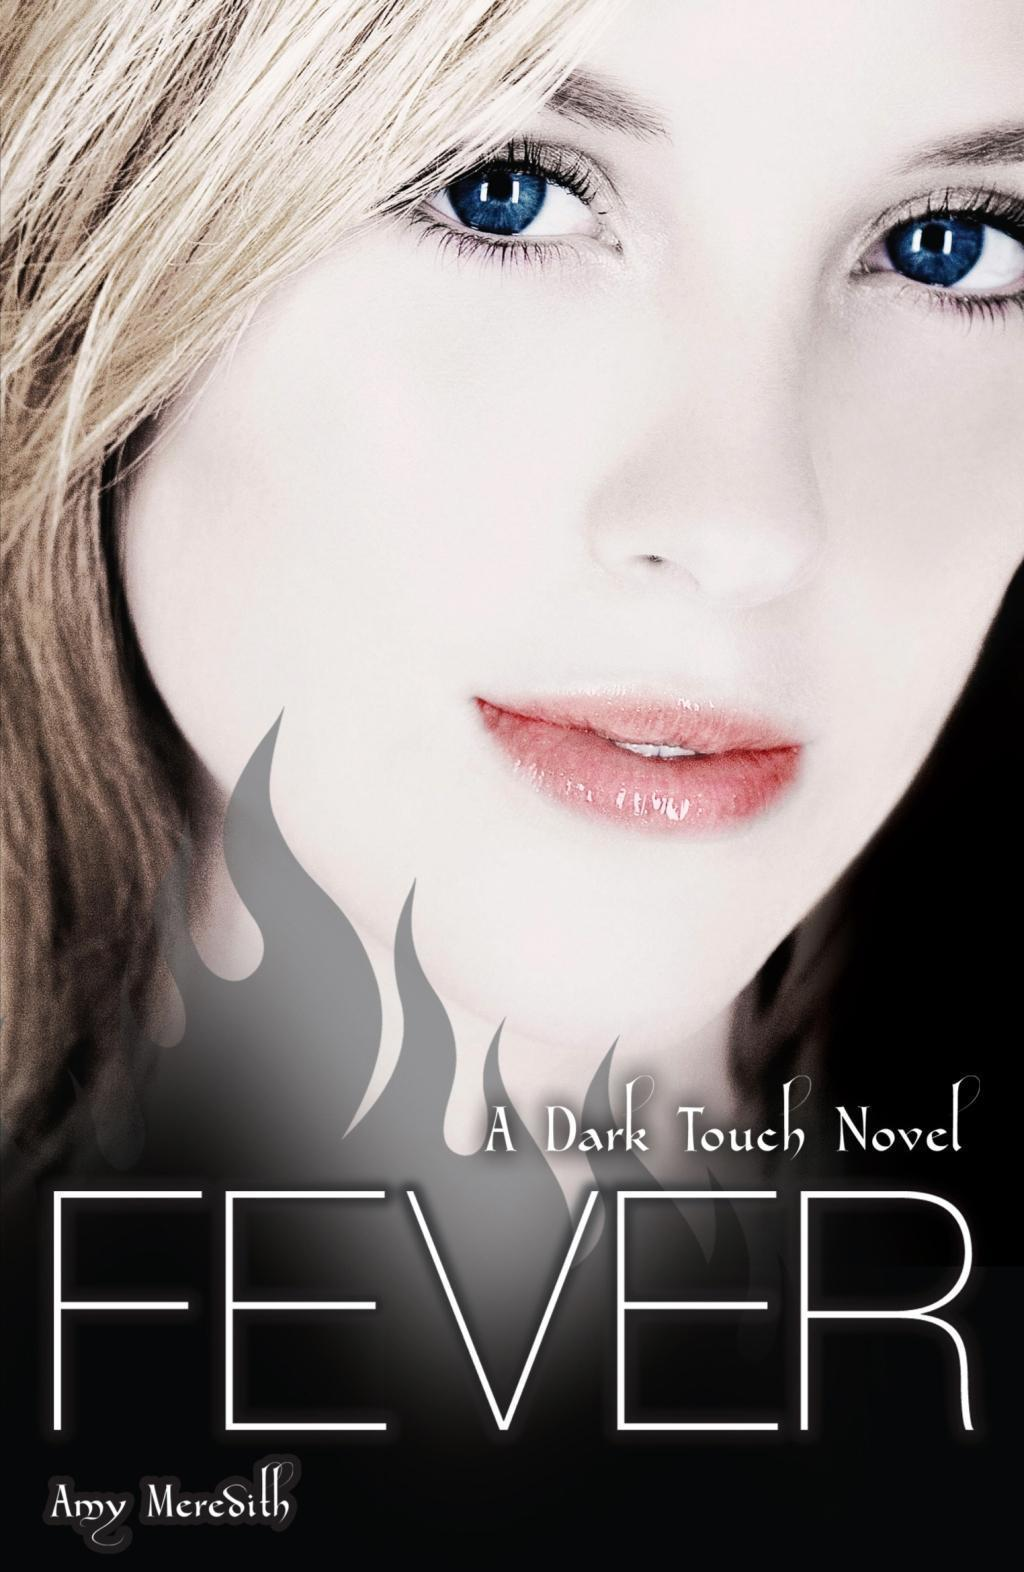 Dark Touch: Fever